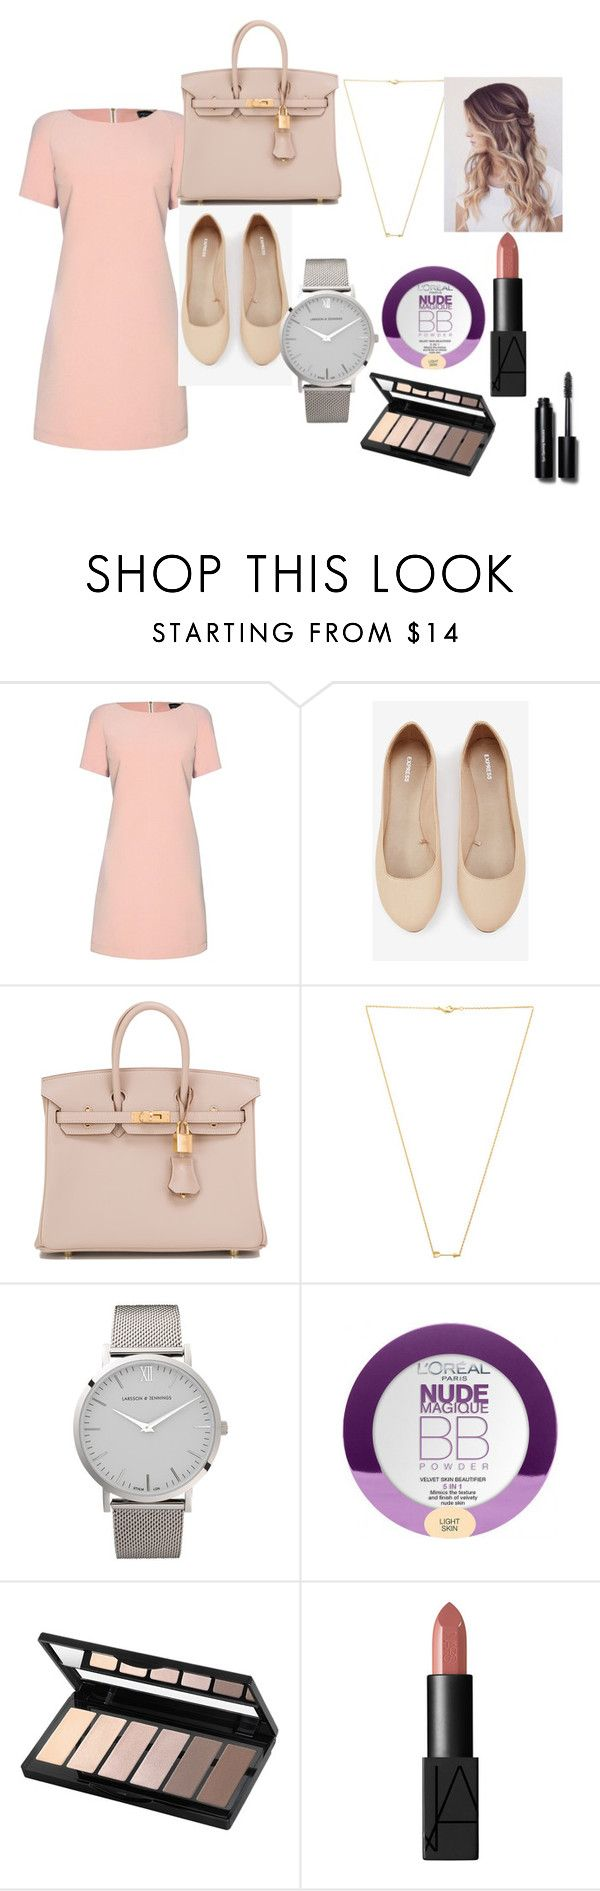 F5S by keepsmileanna on Polyvore featuring beauty, L'Oréal Paris, Isadora, Bobbi Brown Cosmetics, NARS Cosmetics, Wanderlust + Co, Larsson & Jennings, Hermès, James Lakeland and Express